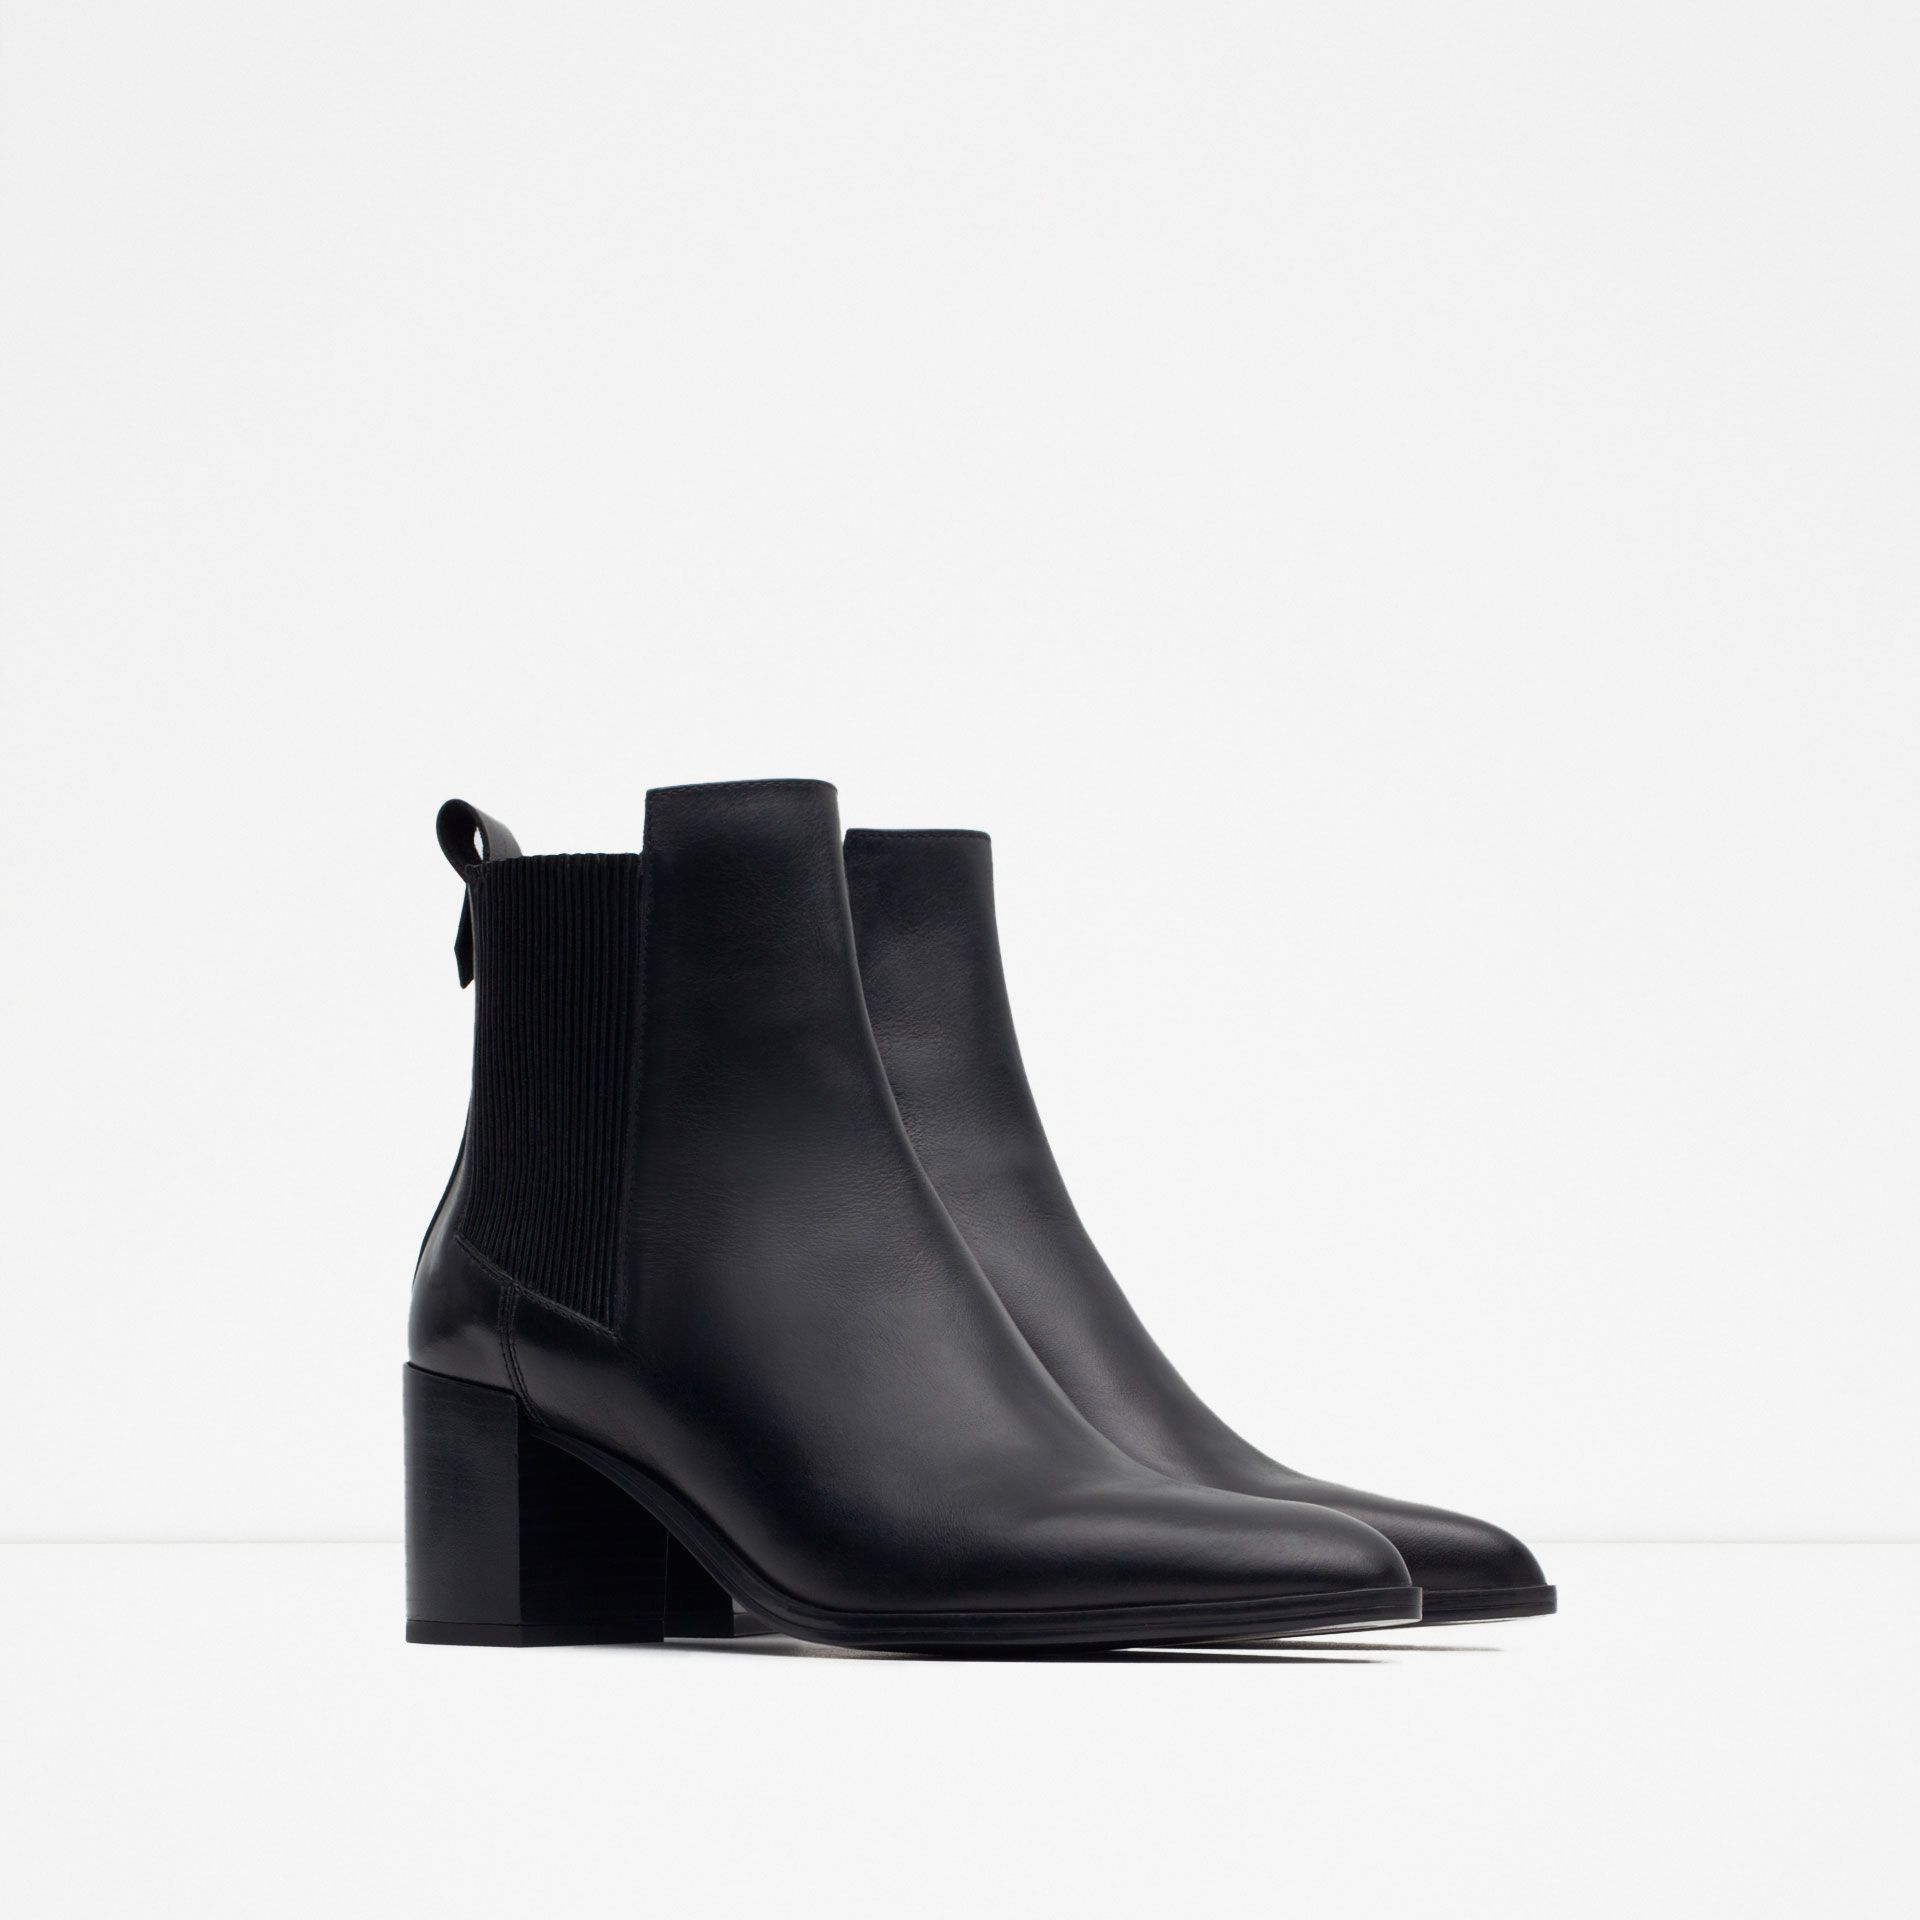 8bf524f5ce5 Image 2 of BLOCK HEEL LEATHER ANKLE BOOTS WITH STRETCH DETAIL from Zara